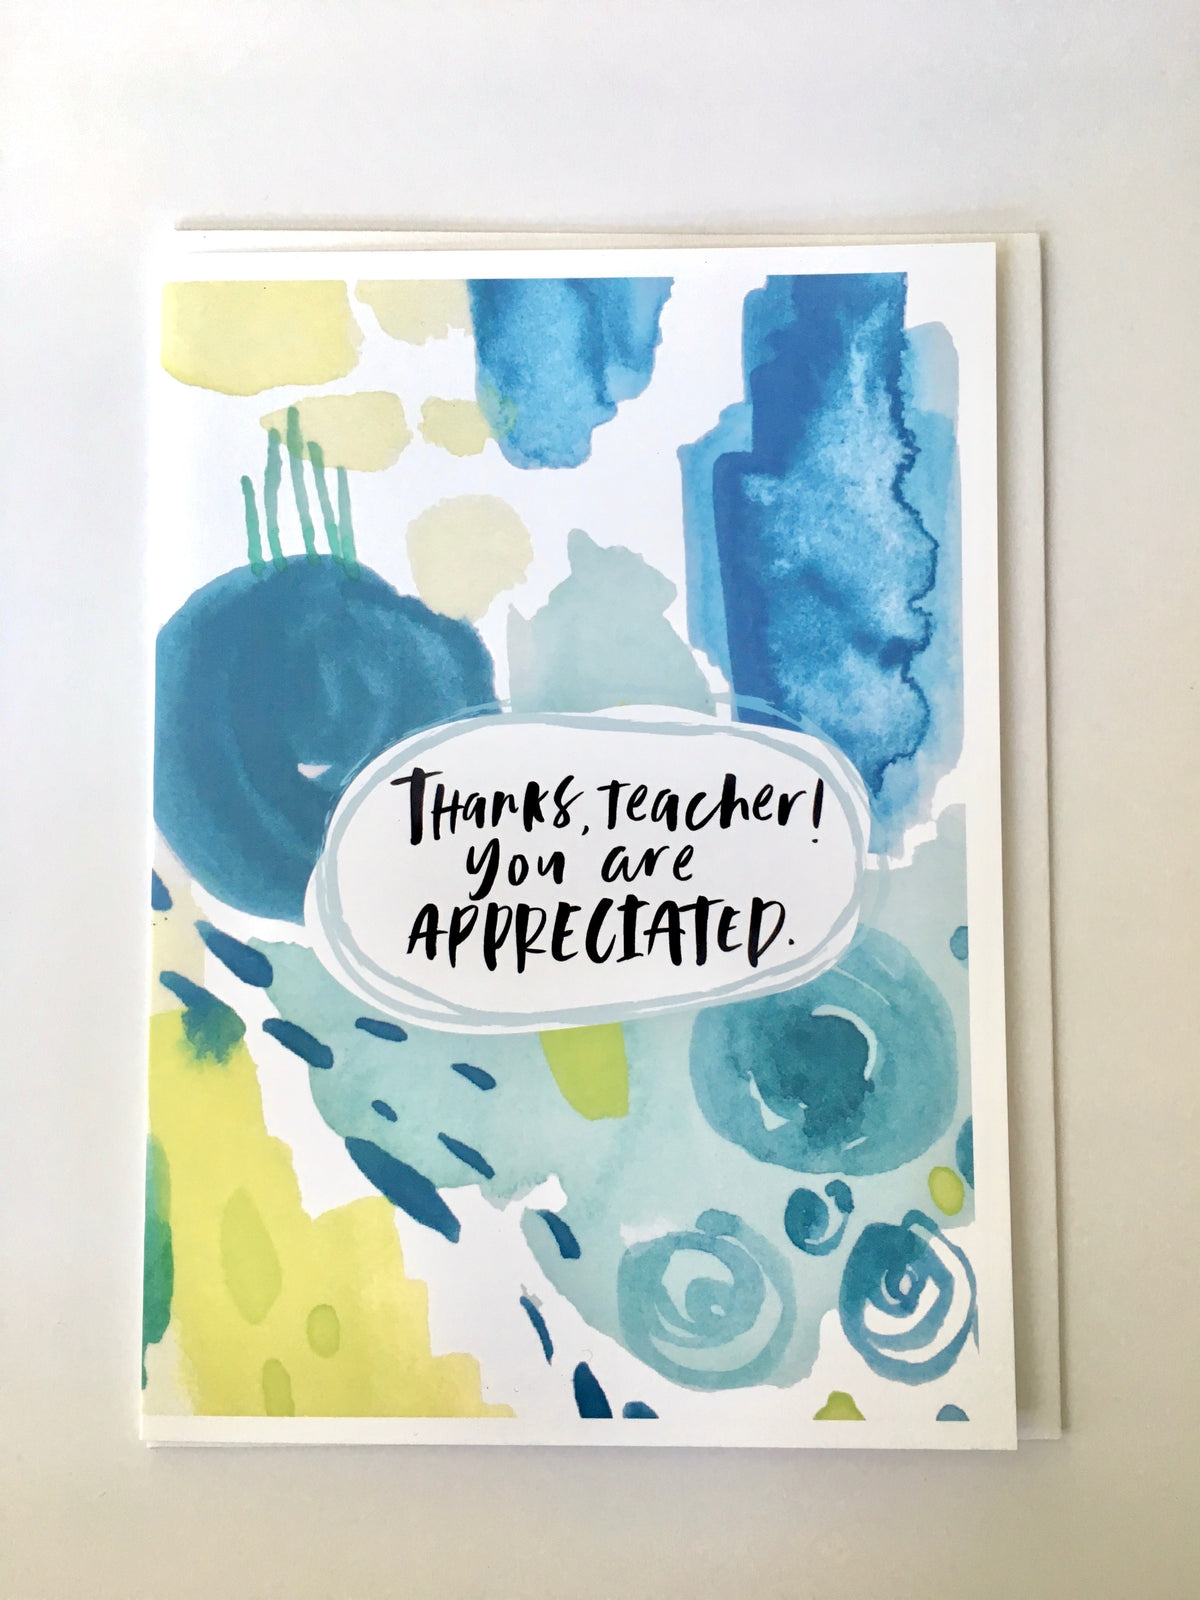 Greeting Card - Thanks teacher! You are Appreciated - Peach or Plum